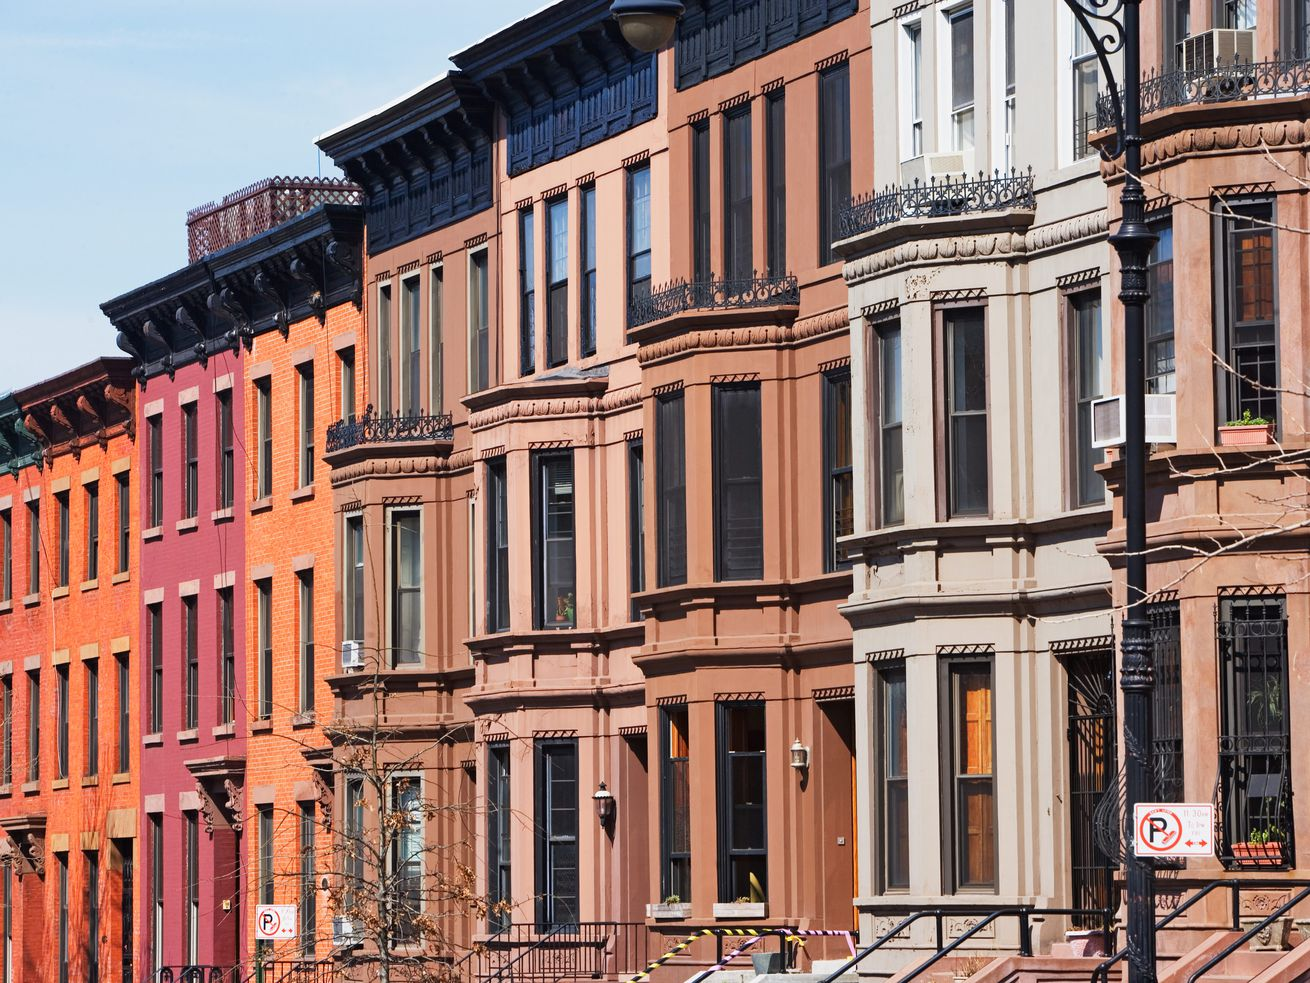 A row of brownstones and bright brick apartment buildings on a block in Brooklyn.